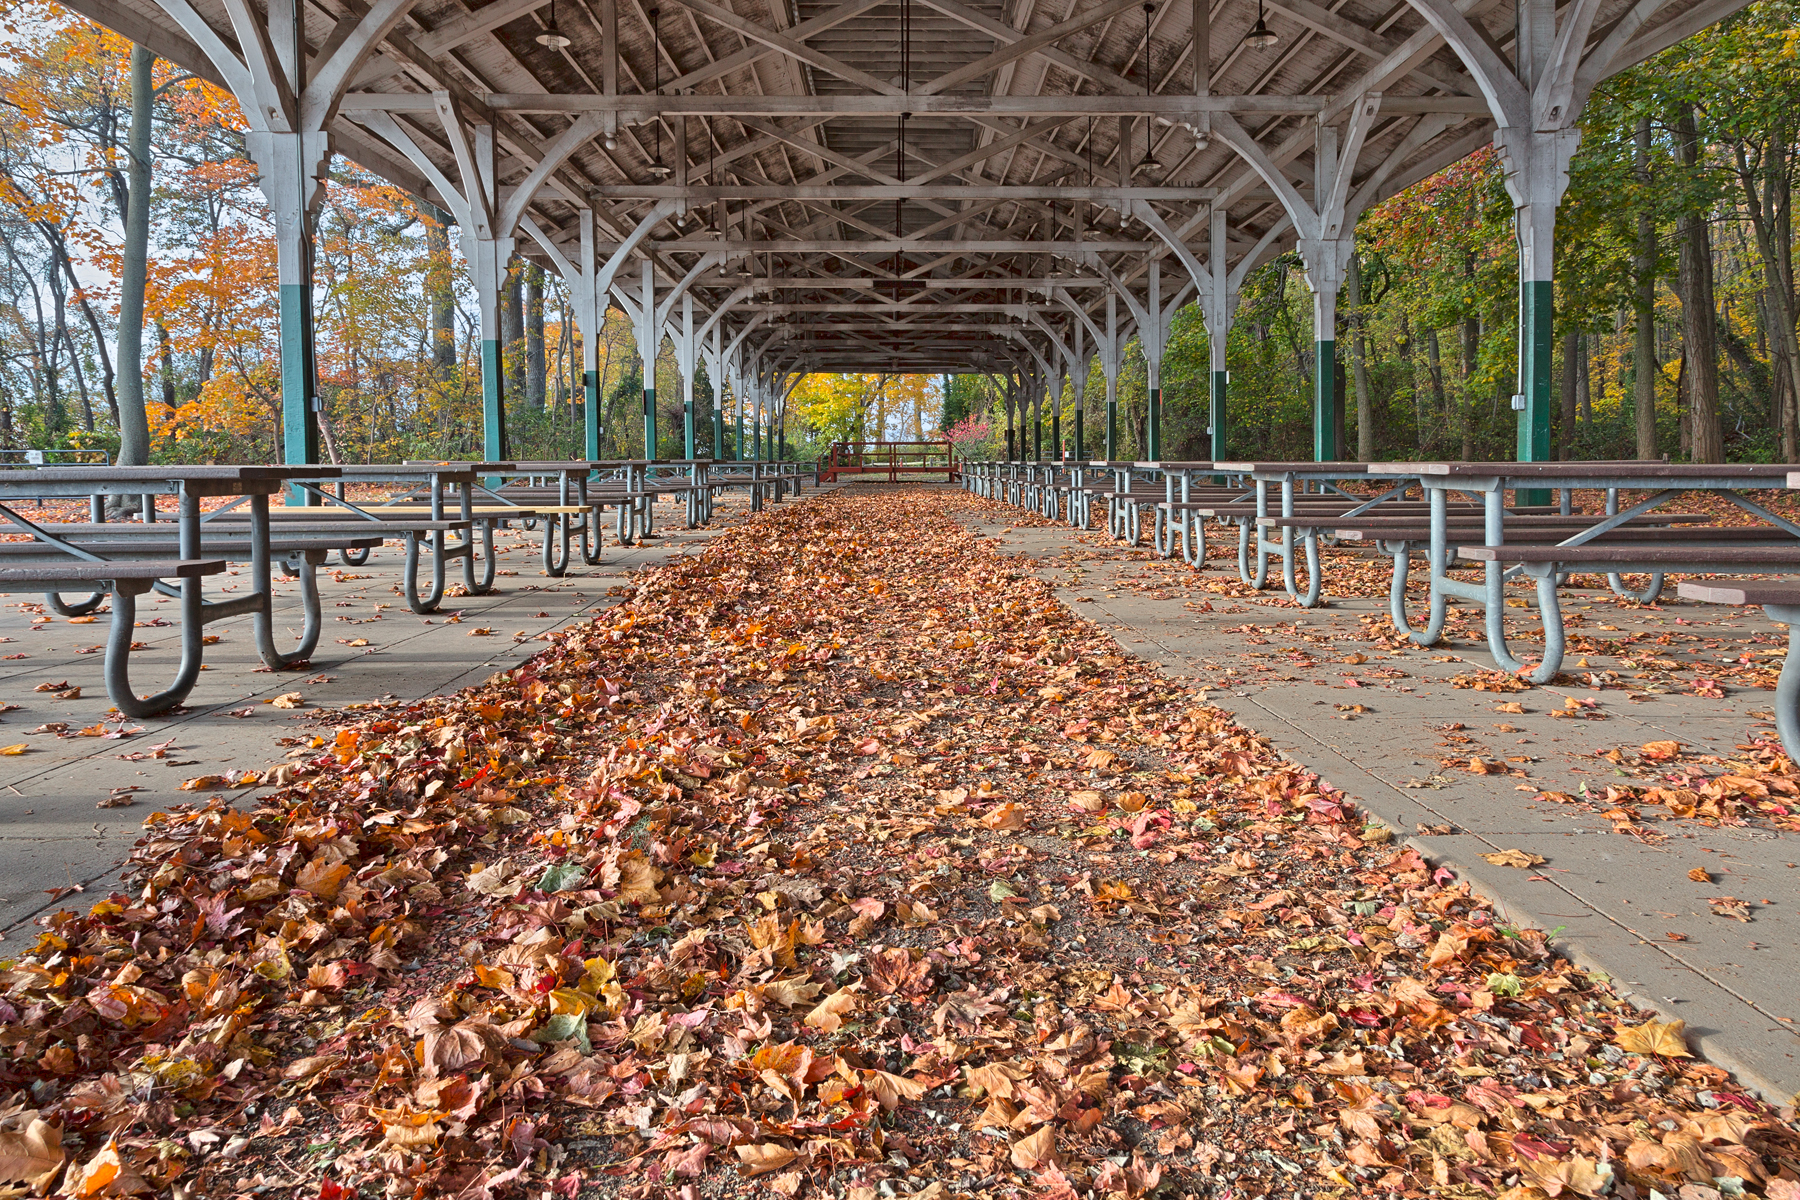 North point trolley pavilion - hdr photo